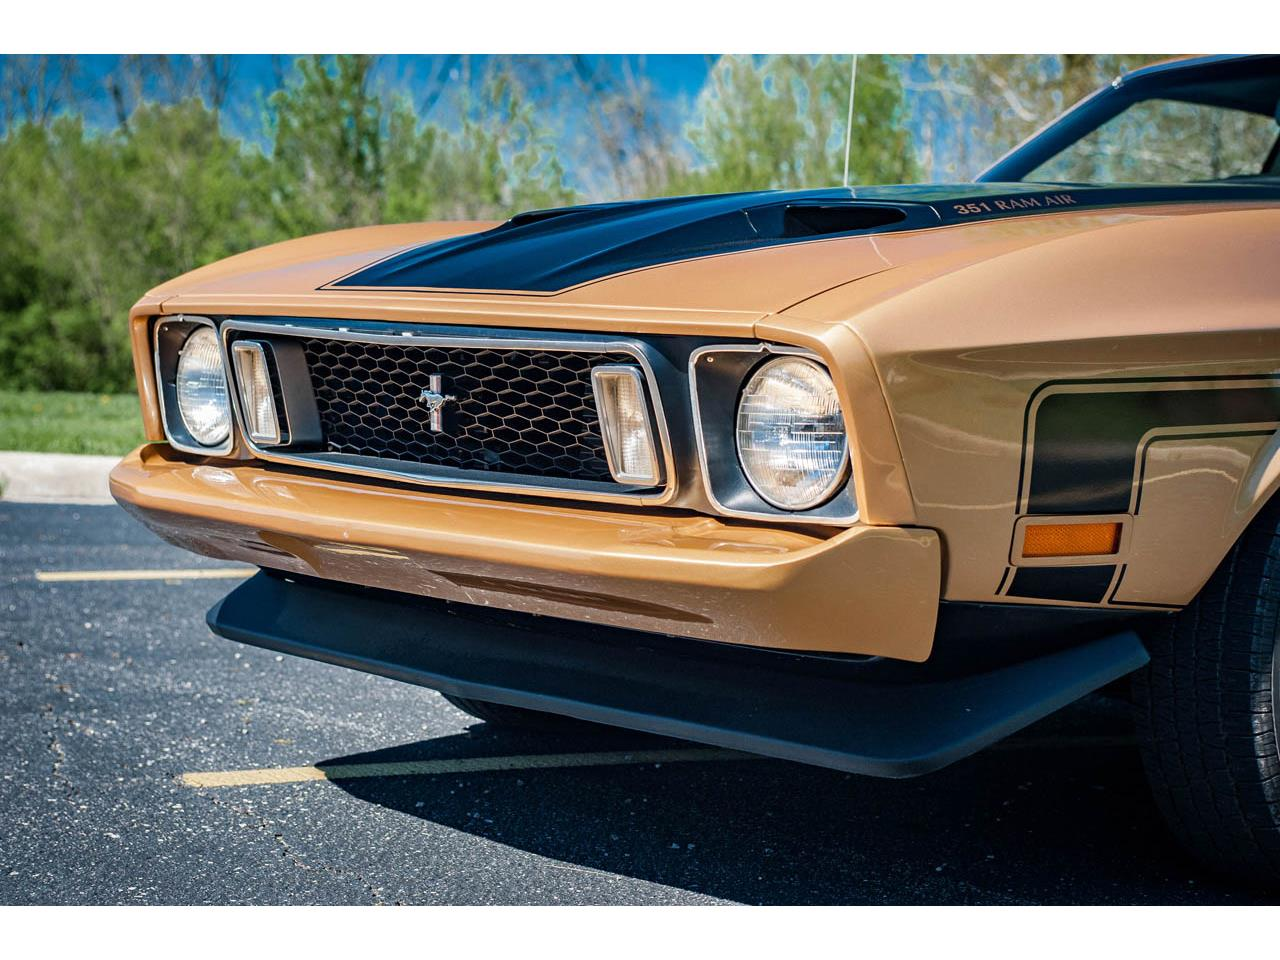 Large Picture of 1973 Mustang located in O'Fallon Illinois - $34,500.00 Offered by Gateway Classic Cars - St. Louis - QB8T